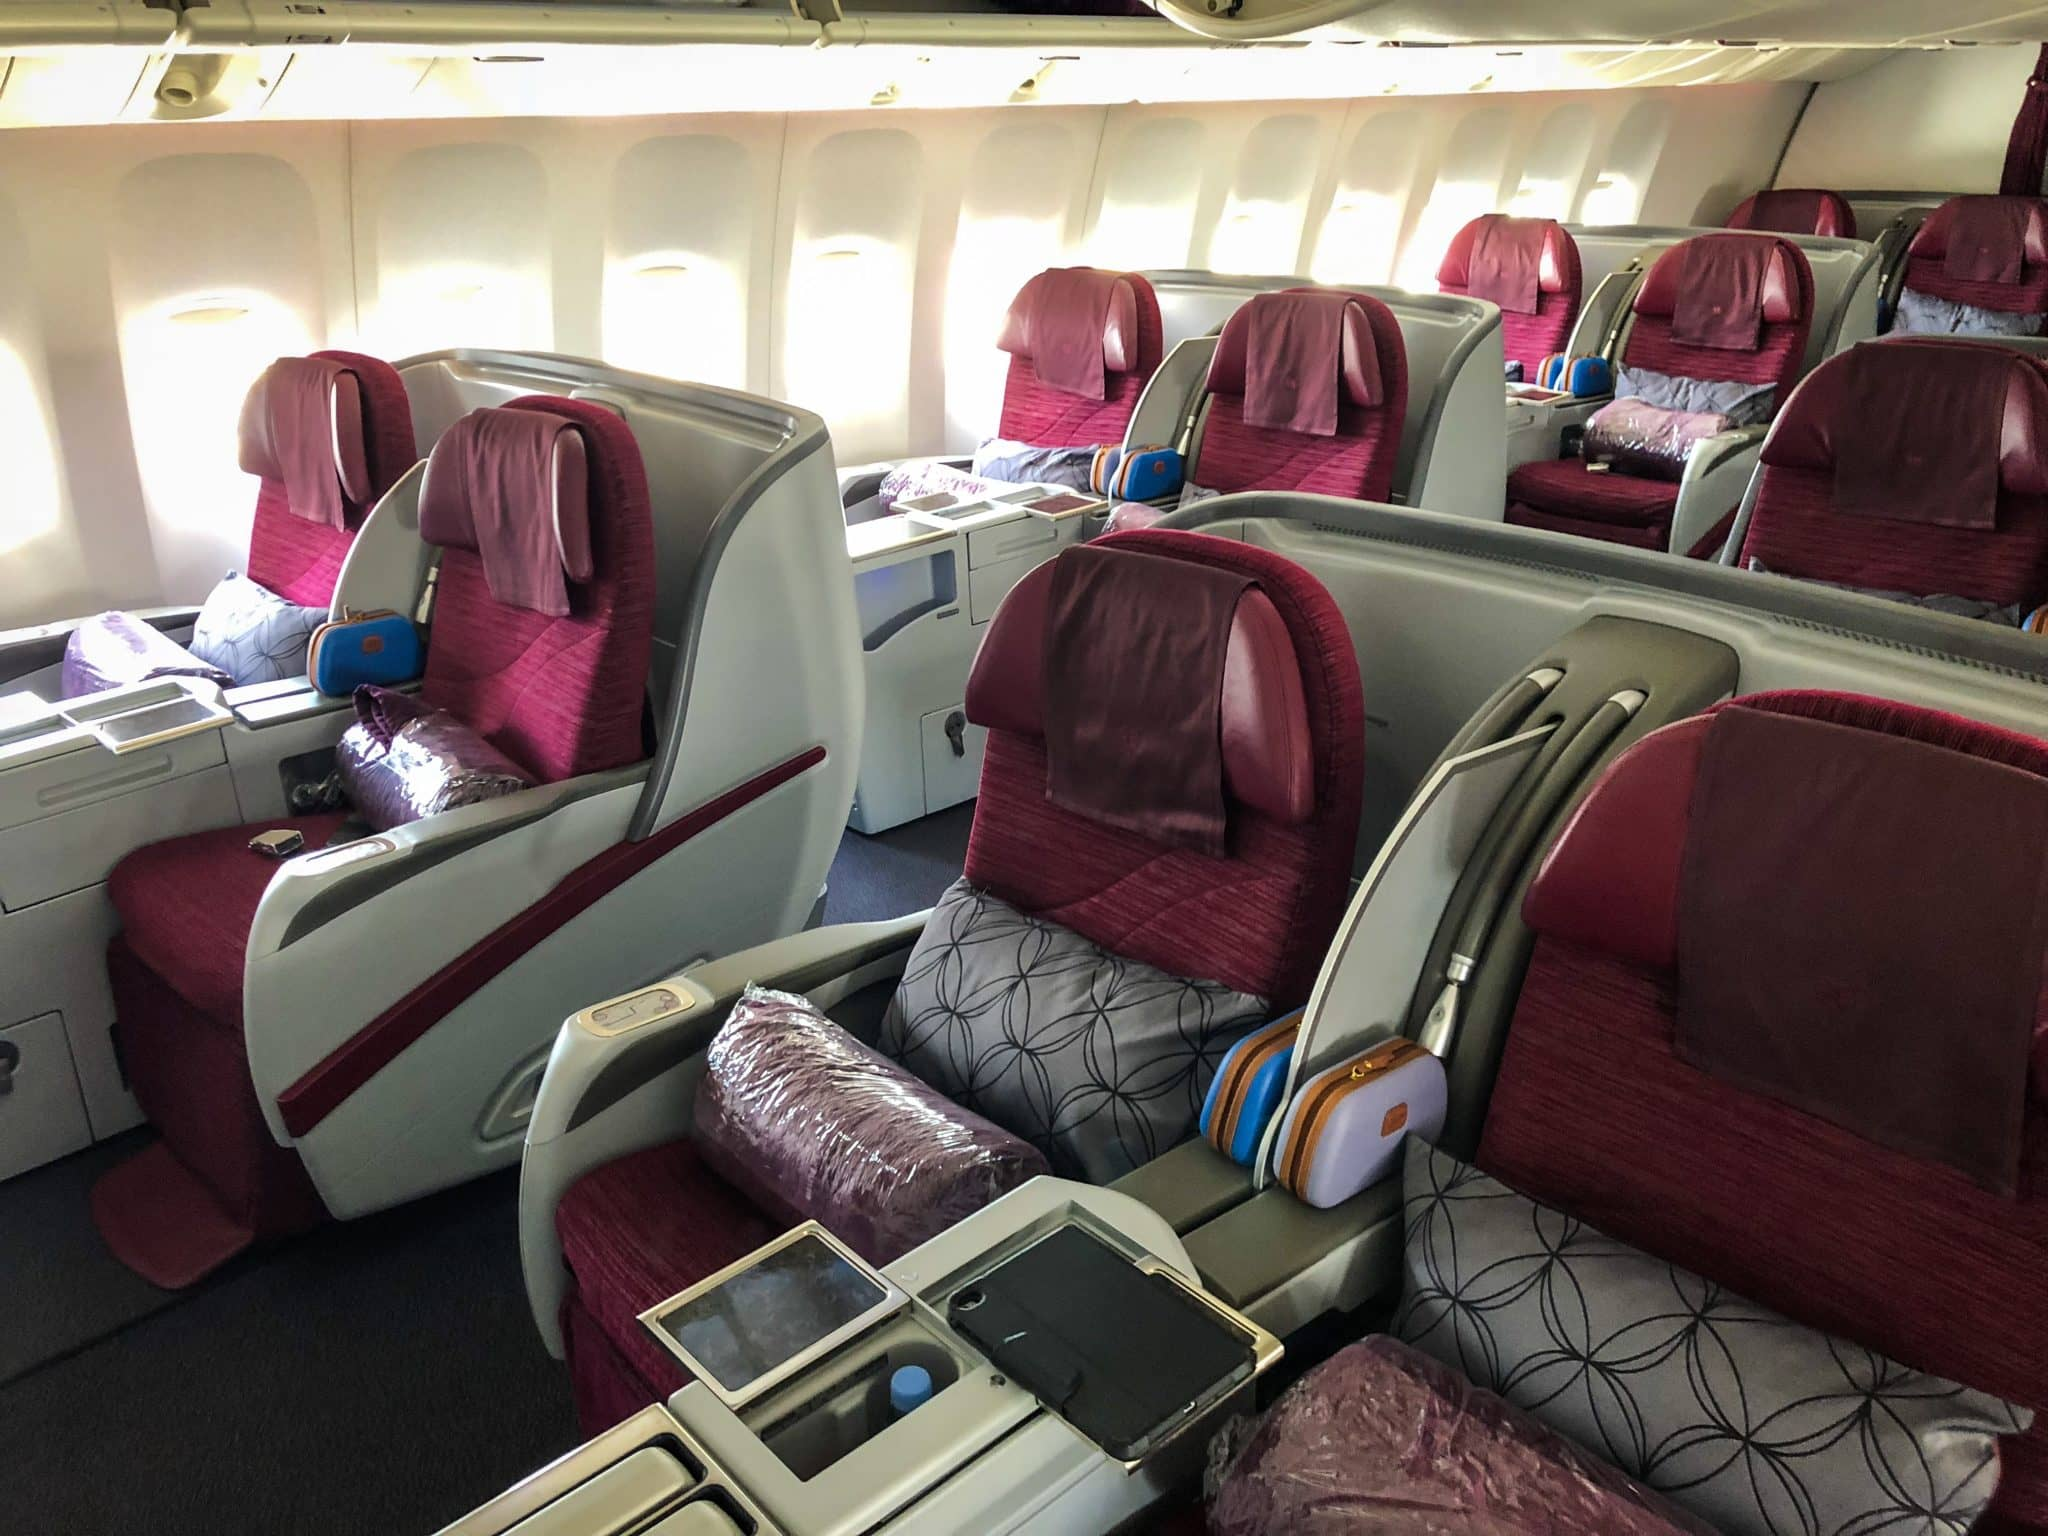 Alte Qatar Airways Business Class Boeing 777-200LR Kabine Vorderansicht